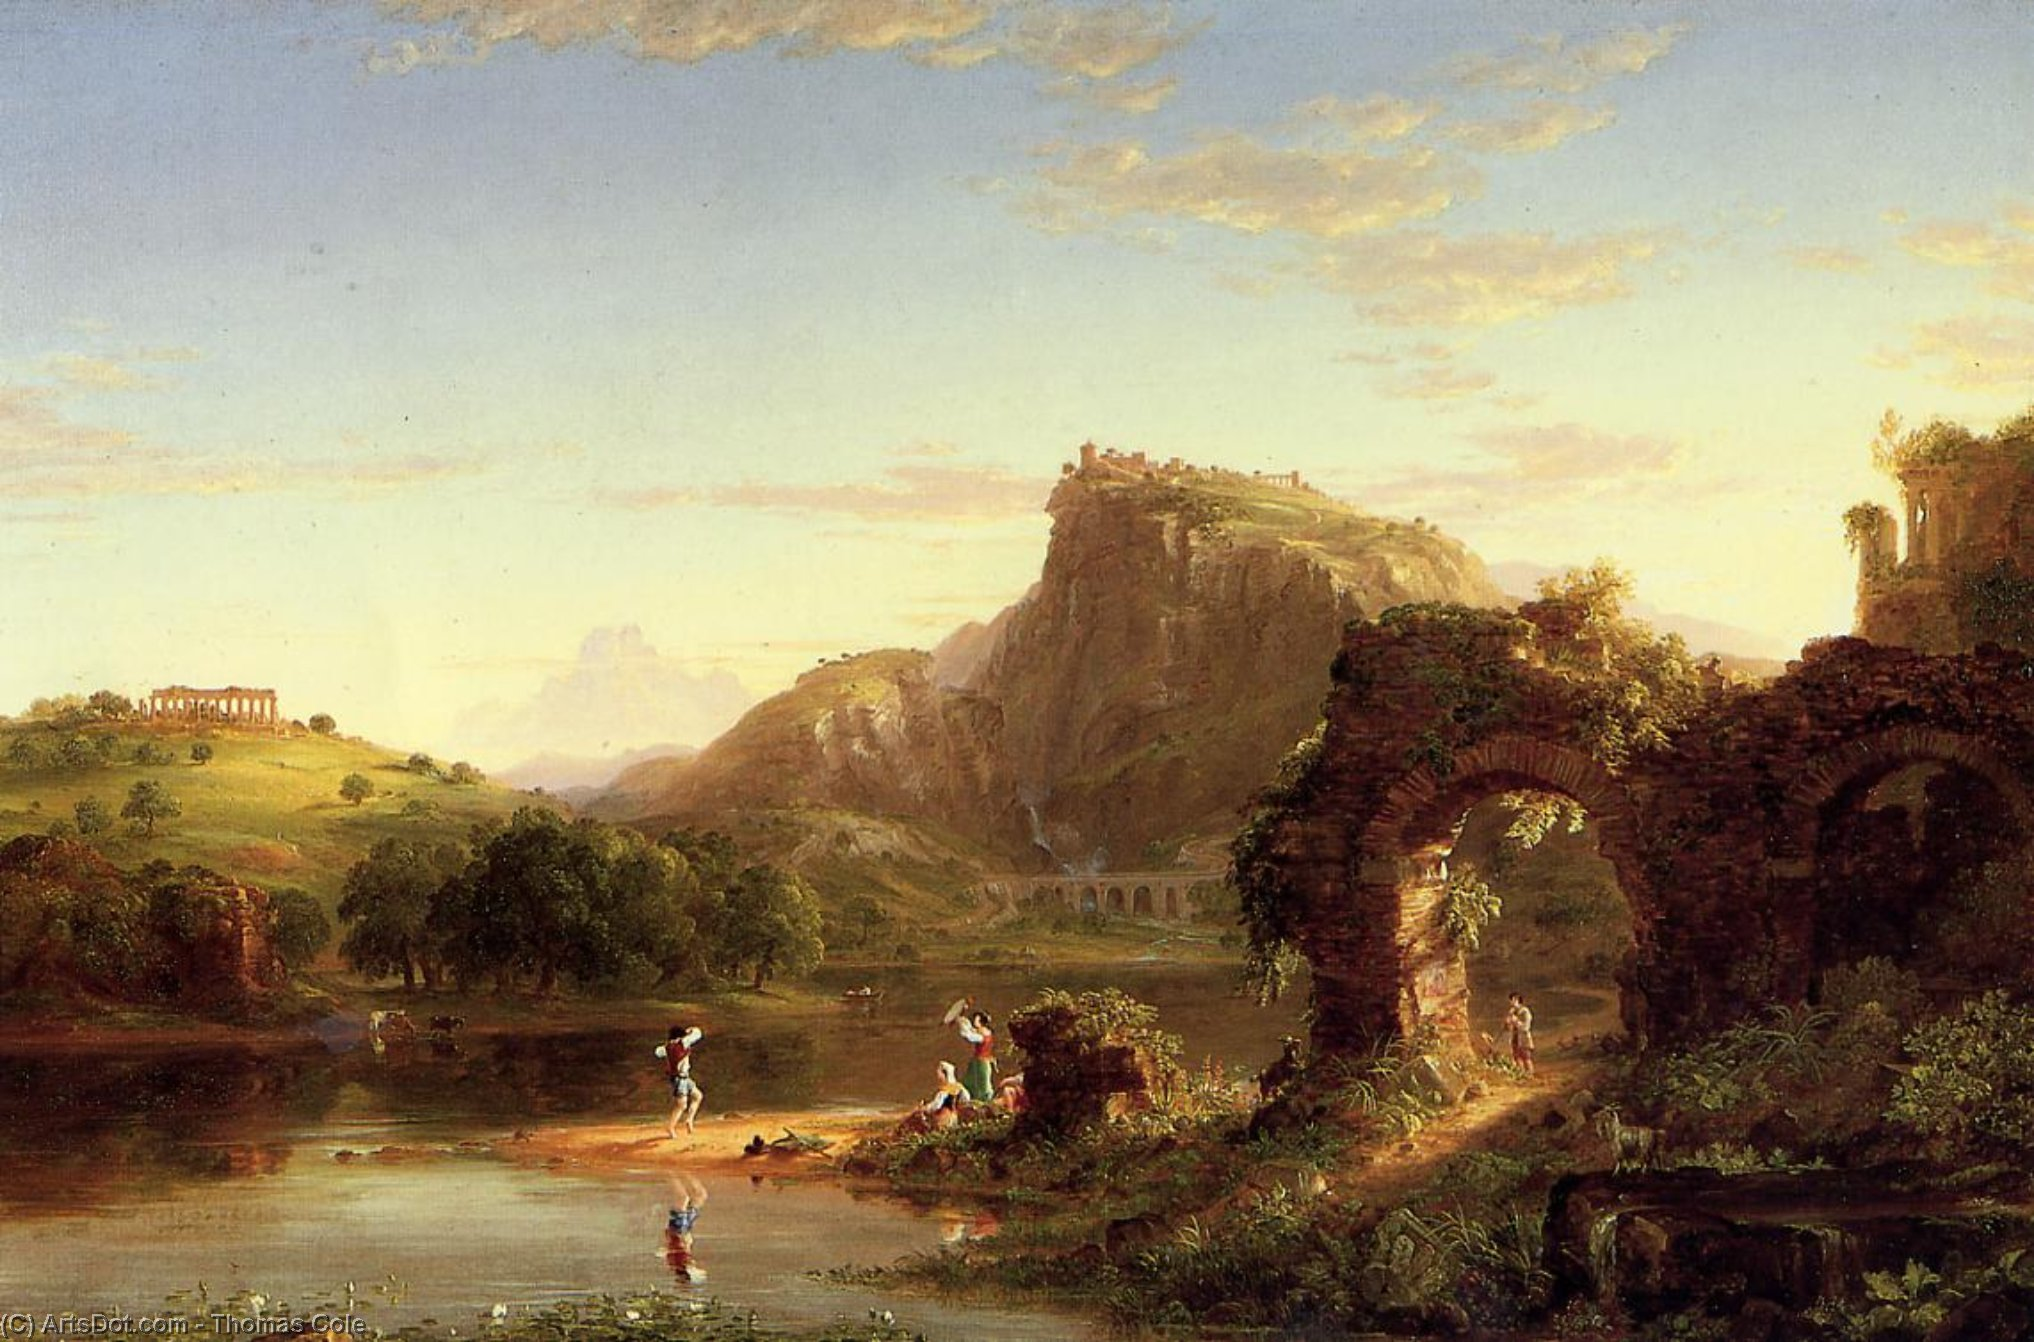 L'Allegro (also known as Italian Sunset), Oil On Canvas by Thomas Cole (1801-1848, United Kingdom)